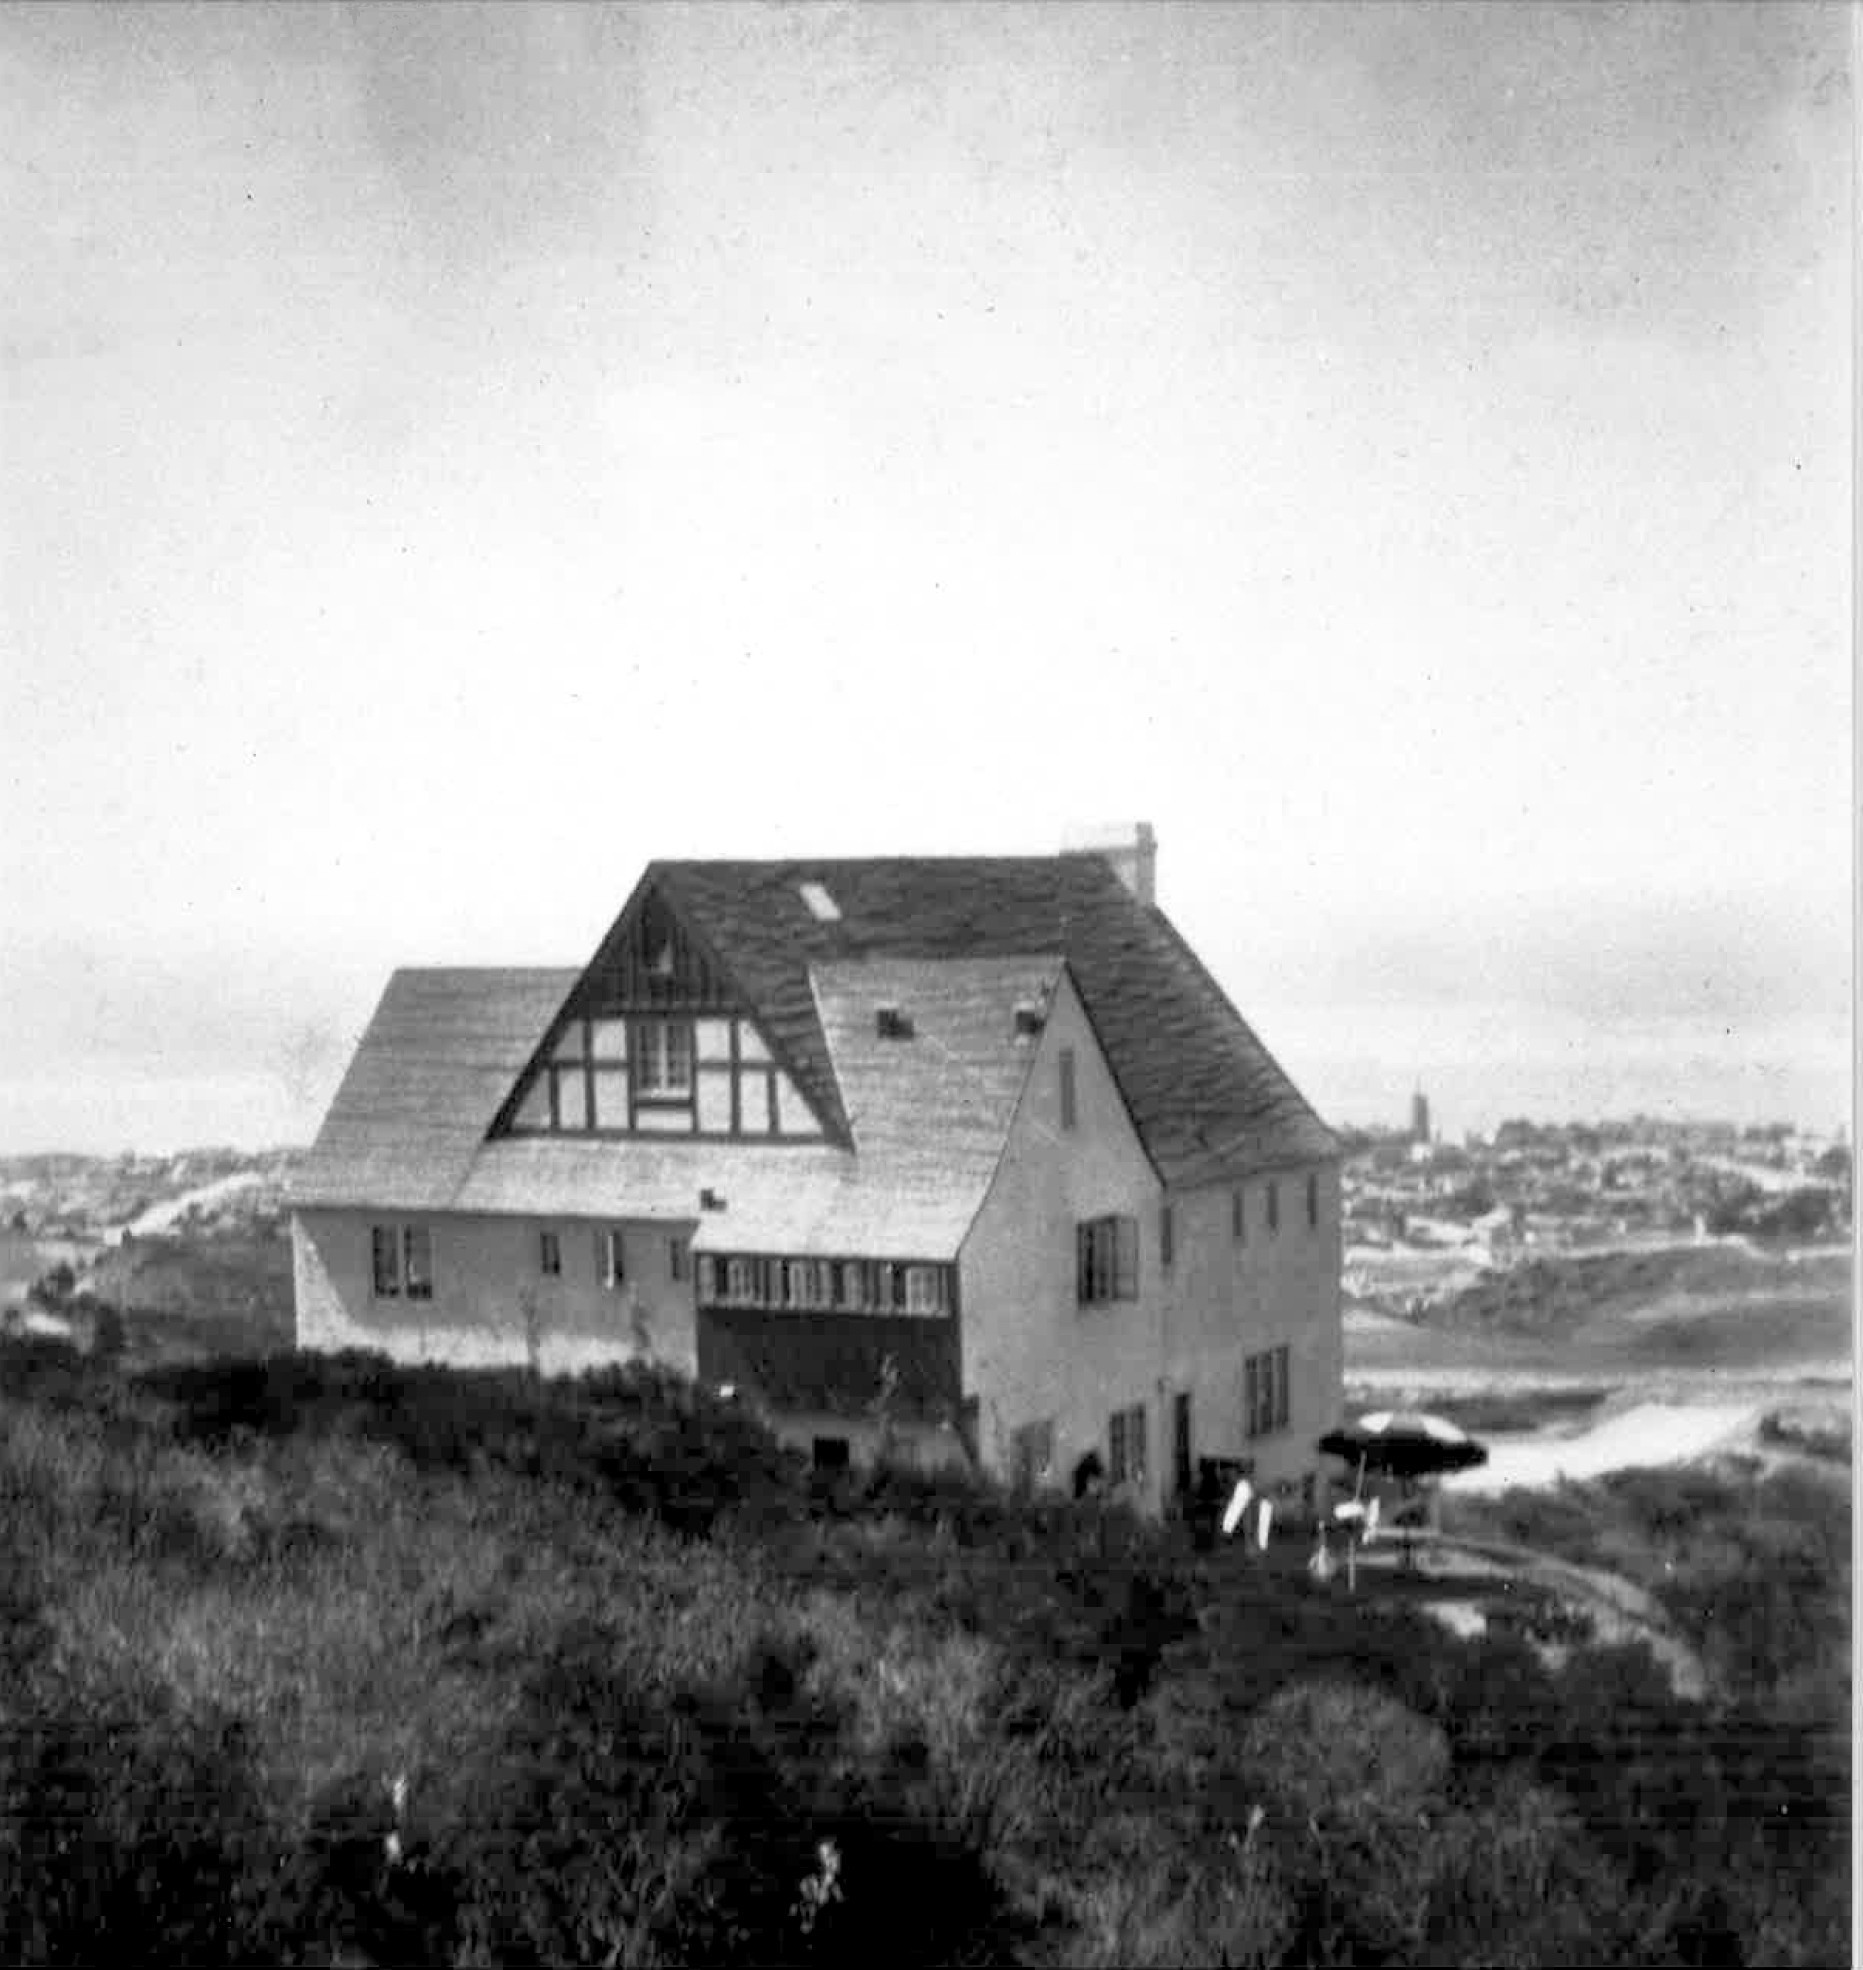 In 1929, Dewhurst & Associates built their first home in La Jolla. still standing today.